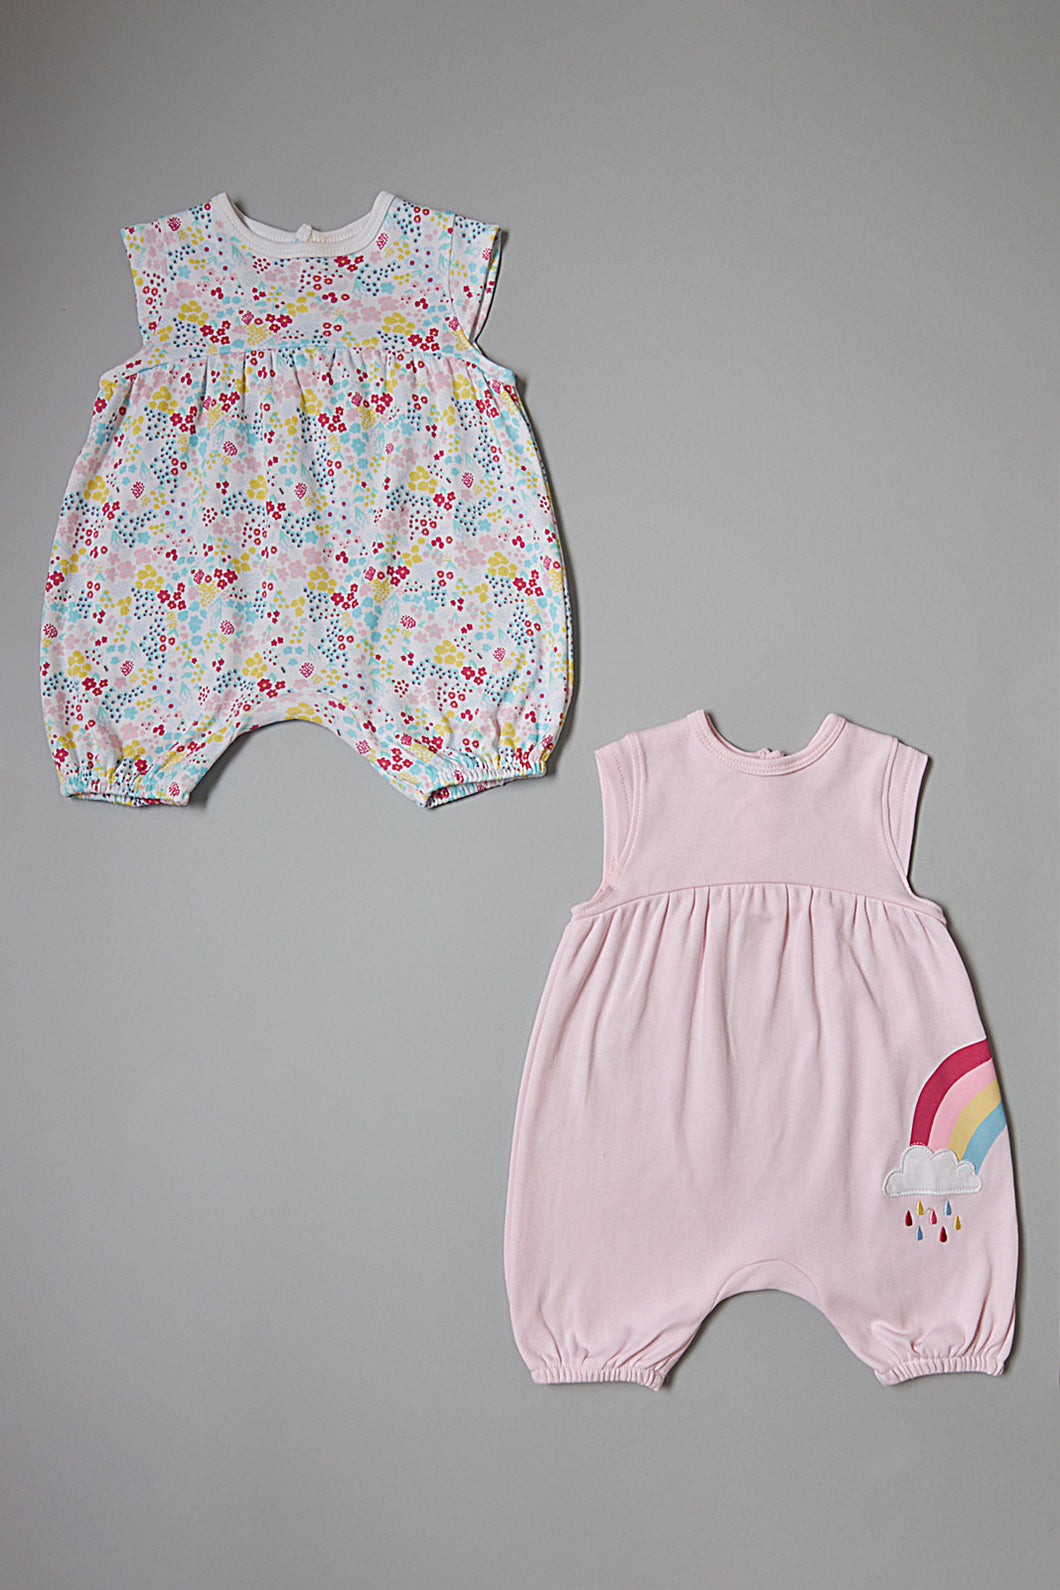 Pink And White Floral Rompers (2 Pack)